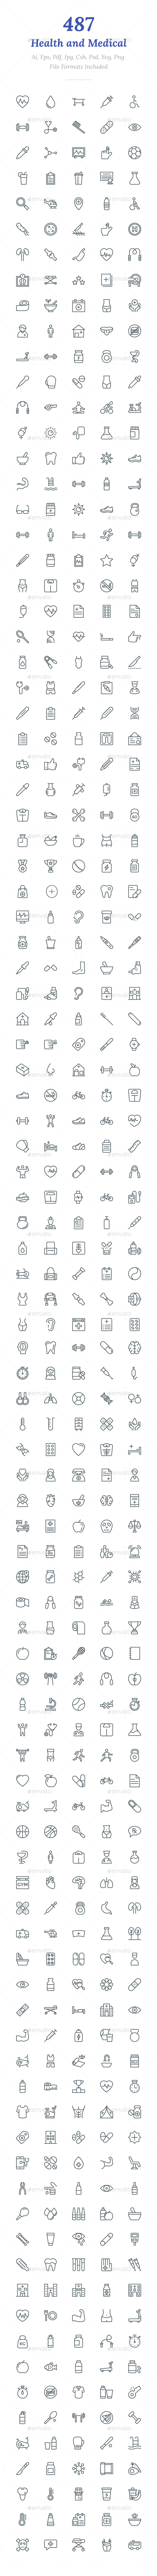 487 Health and Medical Line Icons - Icons